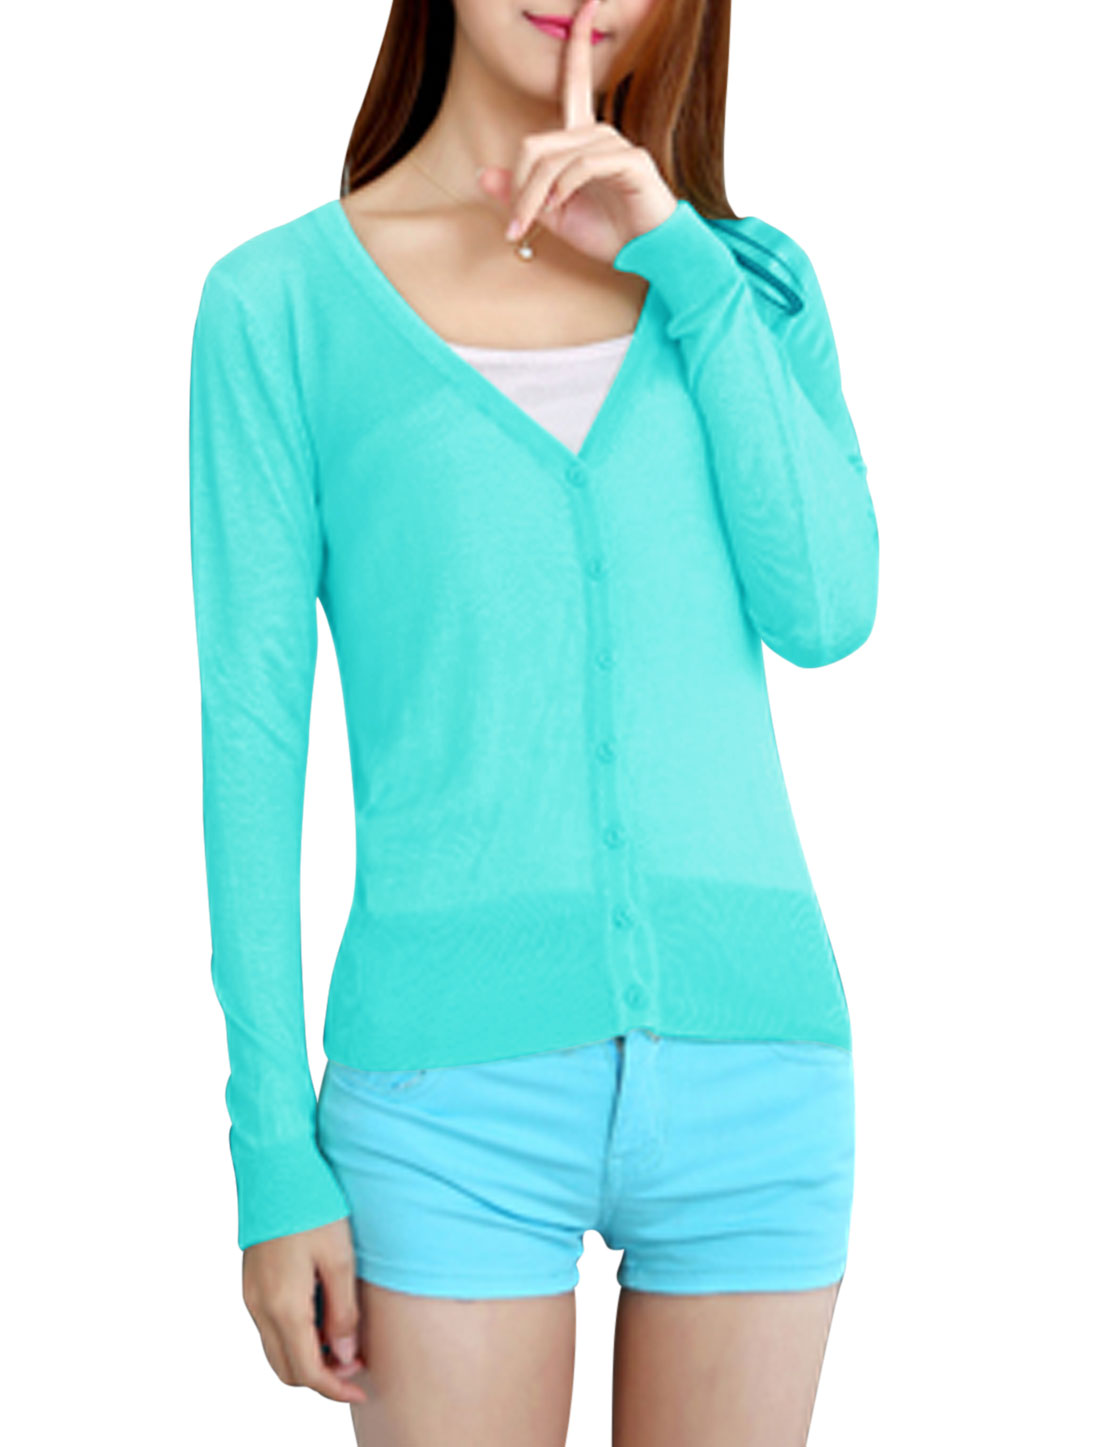 Women Button Closure Long Sleeves V Neck Casual Knit Cardigan Aqua XS